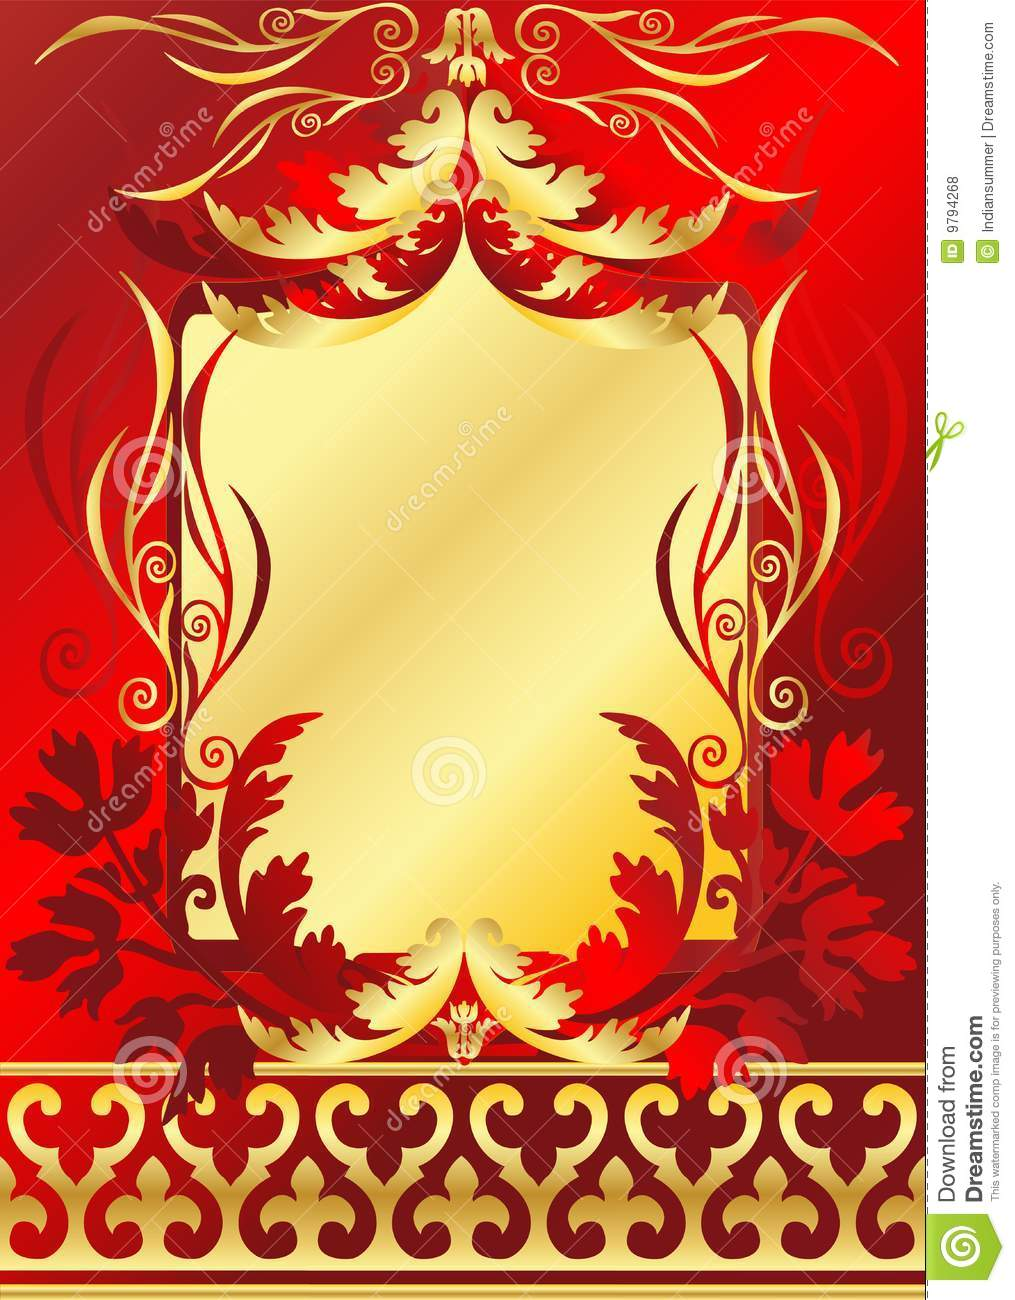 Red And Gold Frame Royalty Free Stock Photos  Image 9794268